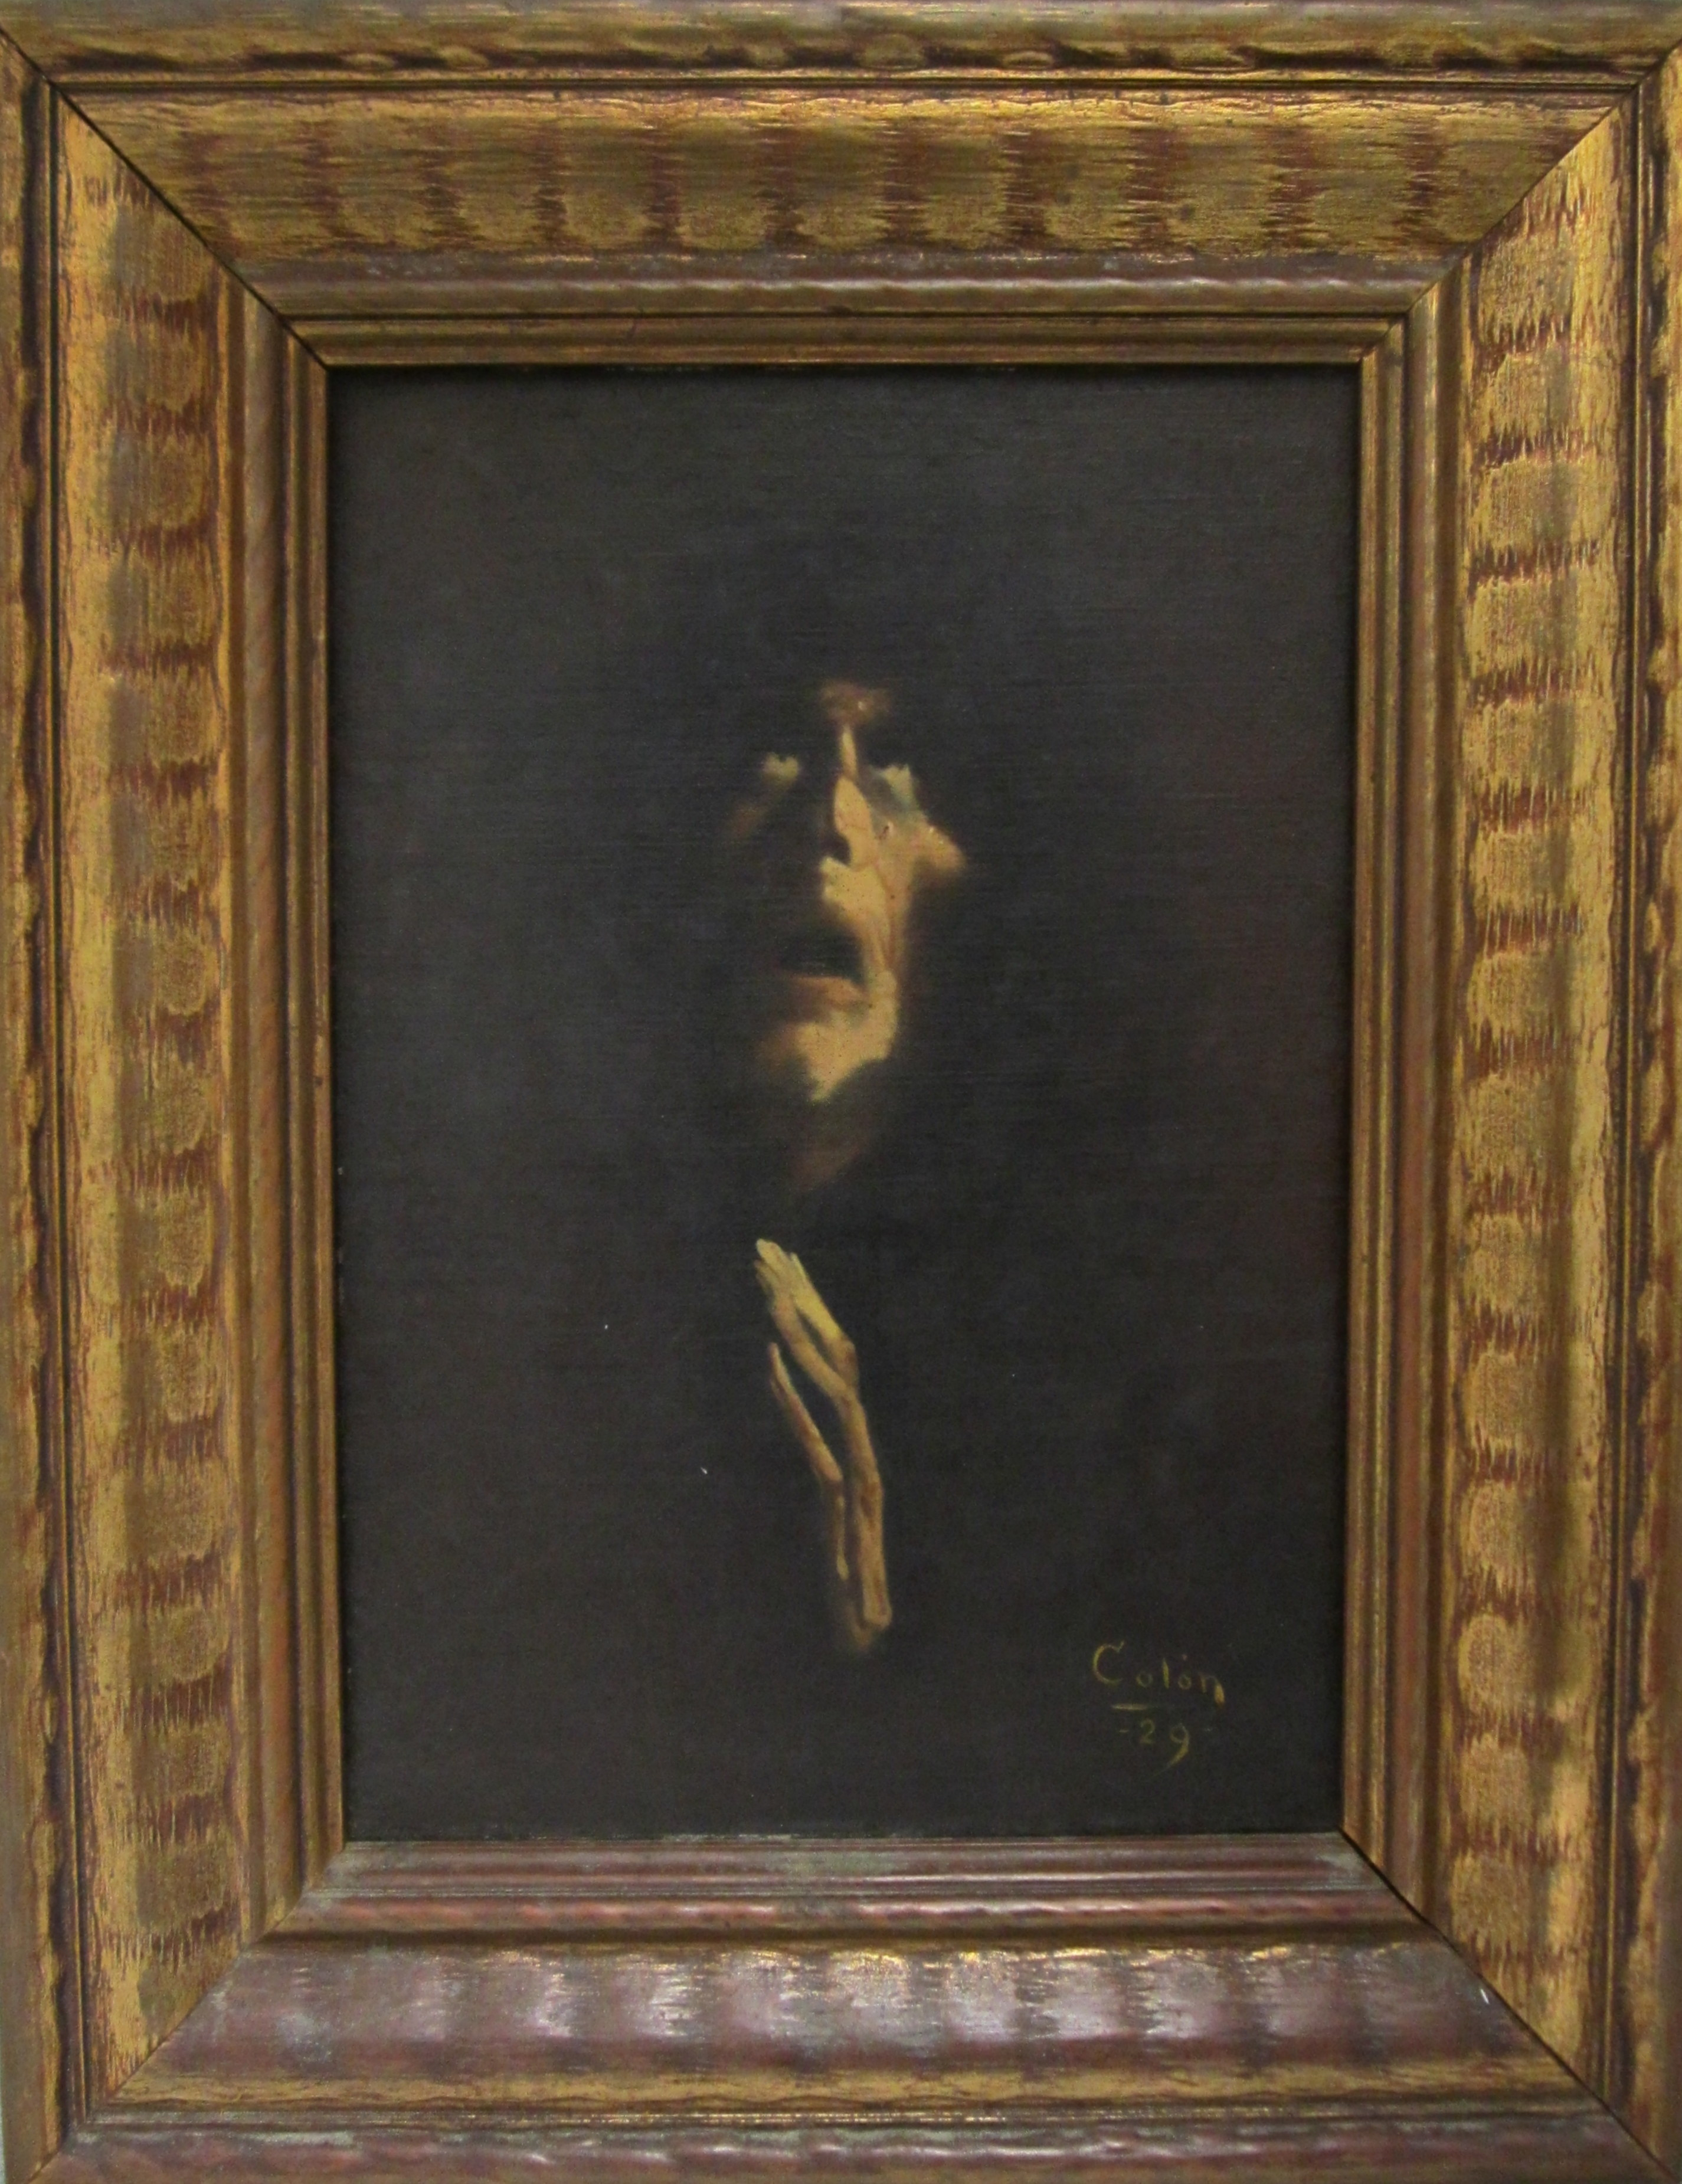 Image: Untitled by Oscar Colón Delgado, oil on canvas